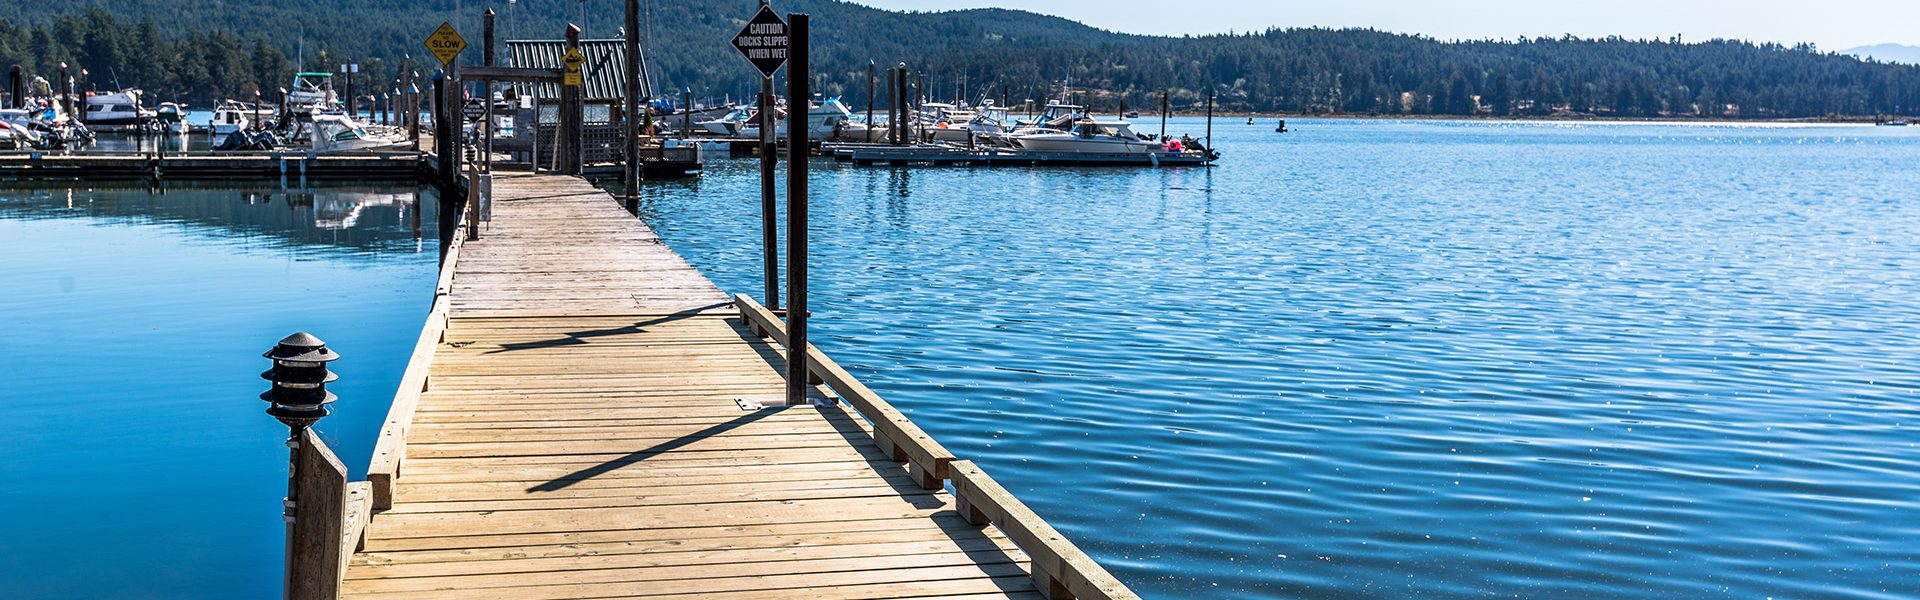 Sooke As A Tourists Paradise